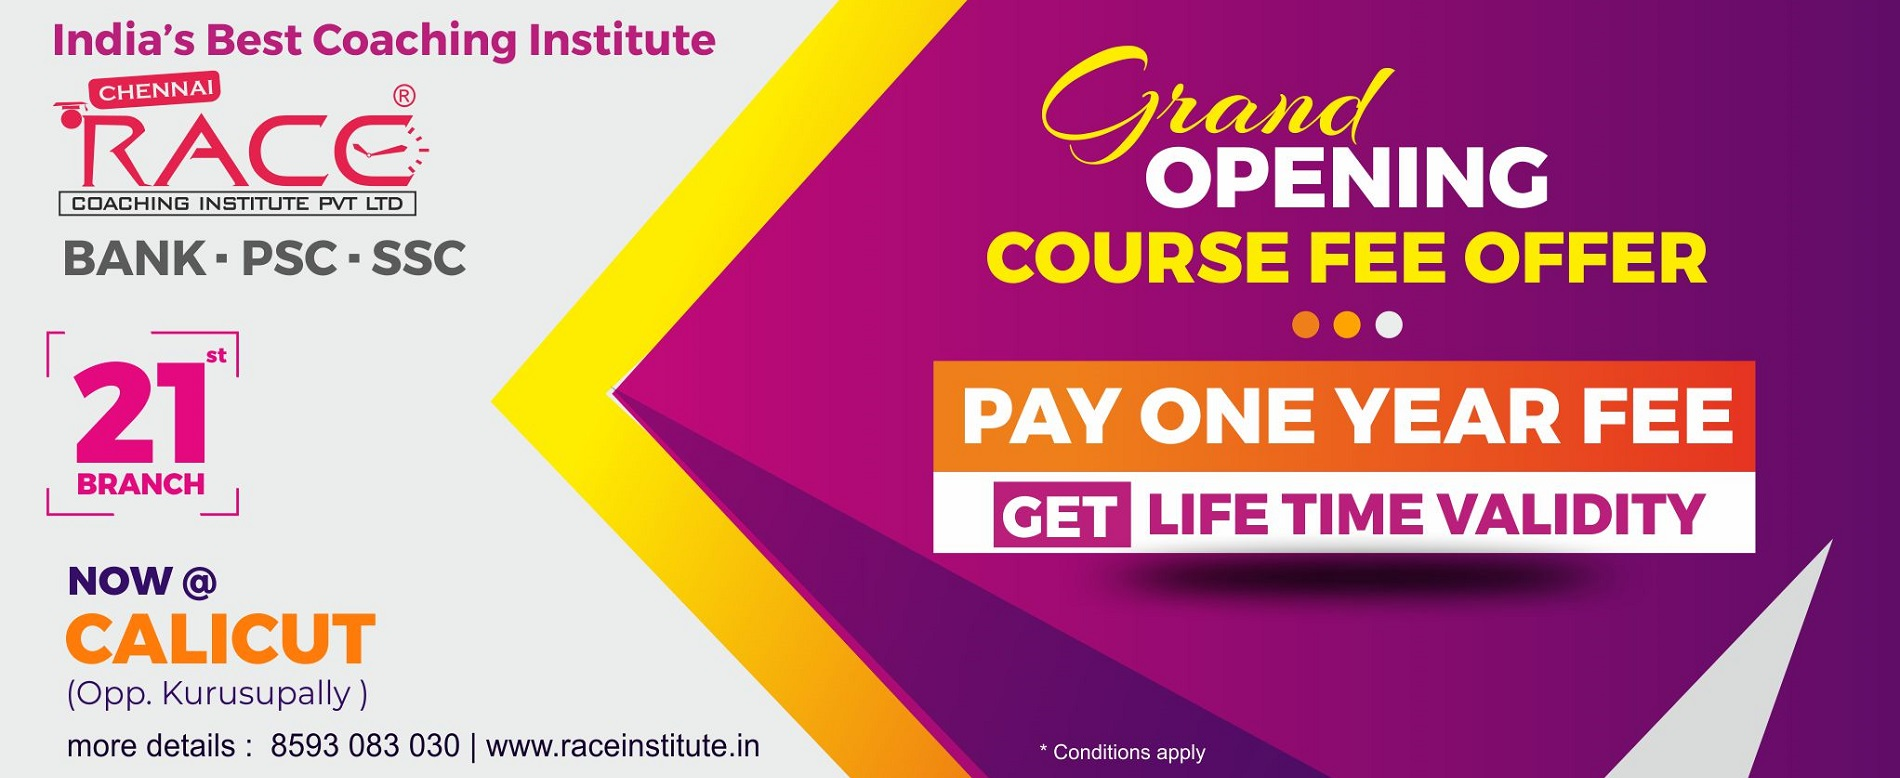 RACE Institute Calicut Kozhikode Branch - Special Offer Best Bank SSC PSC Exam Coaching Institute in Calcut - Join at Offer Price